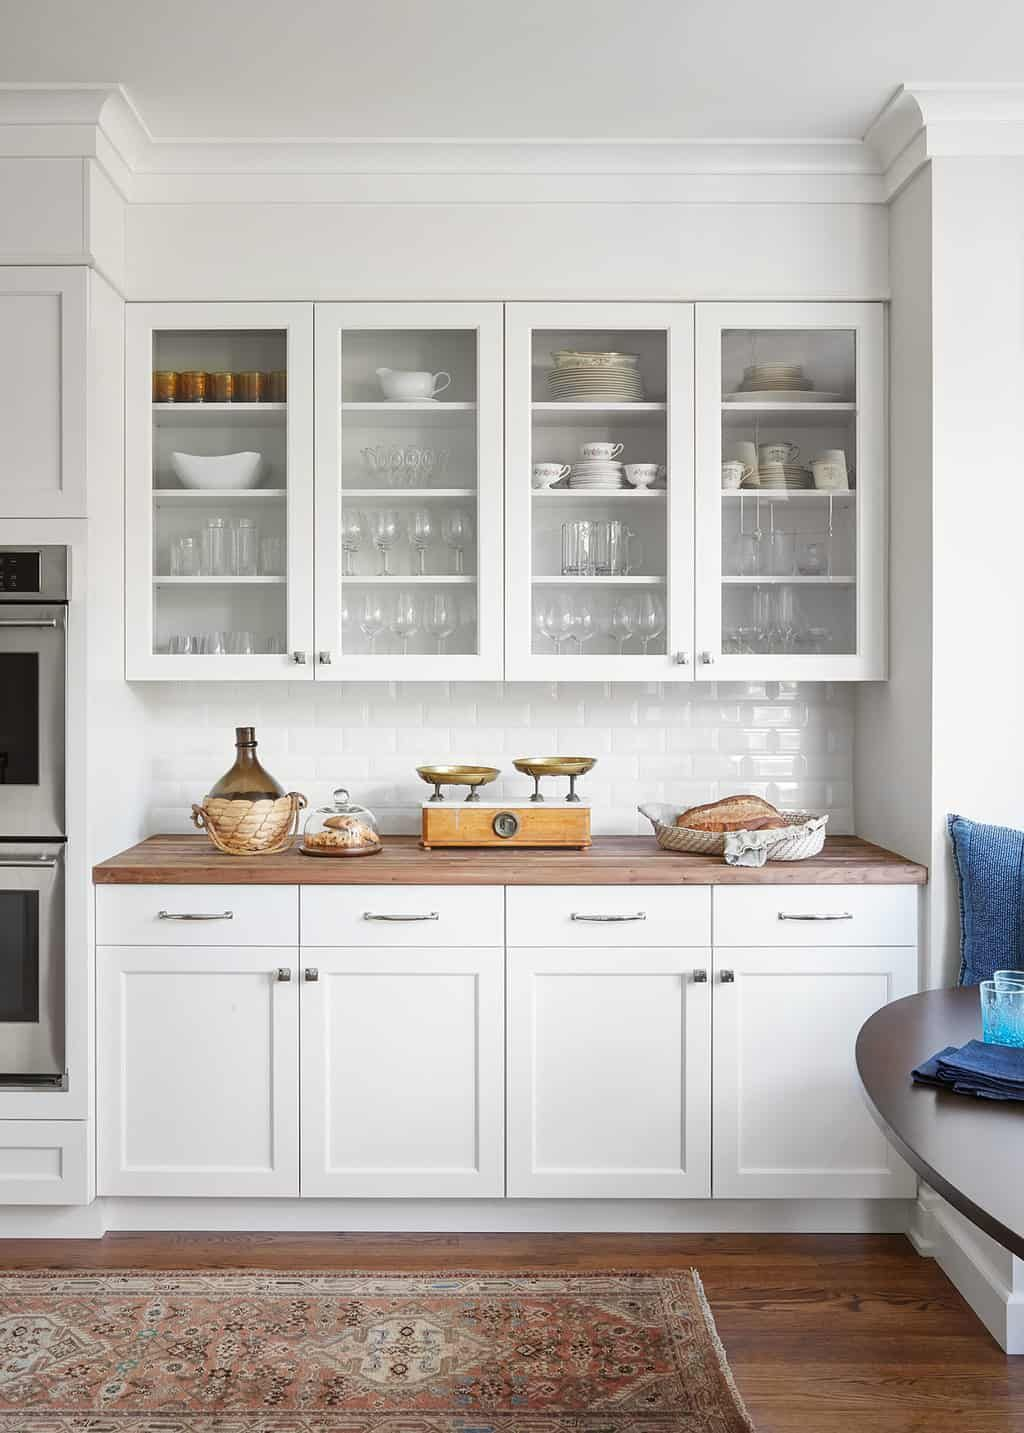 Modern White Kitchen Reveal Featured By Monogram Appliances White Modern Kitchen White Kitchen Design Glass Fronted Kitchen Cabinets